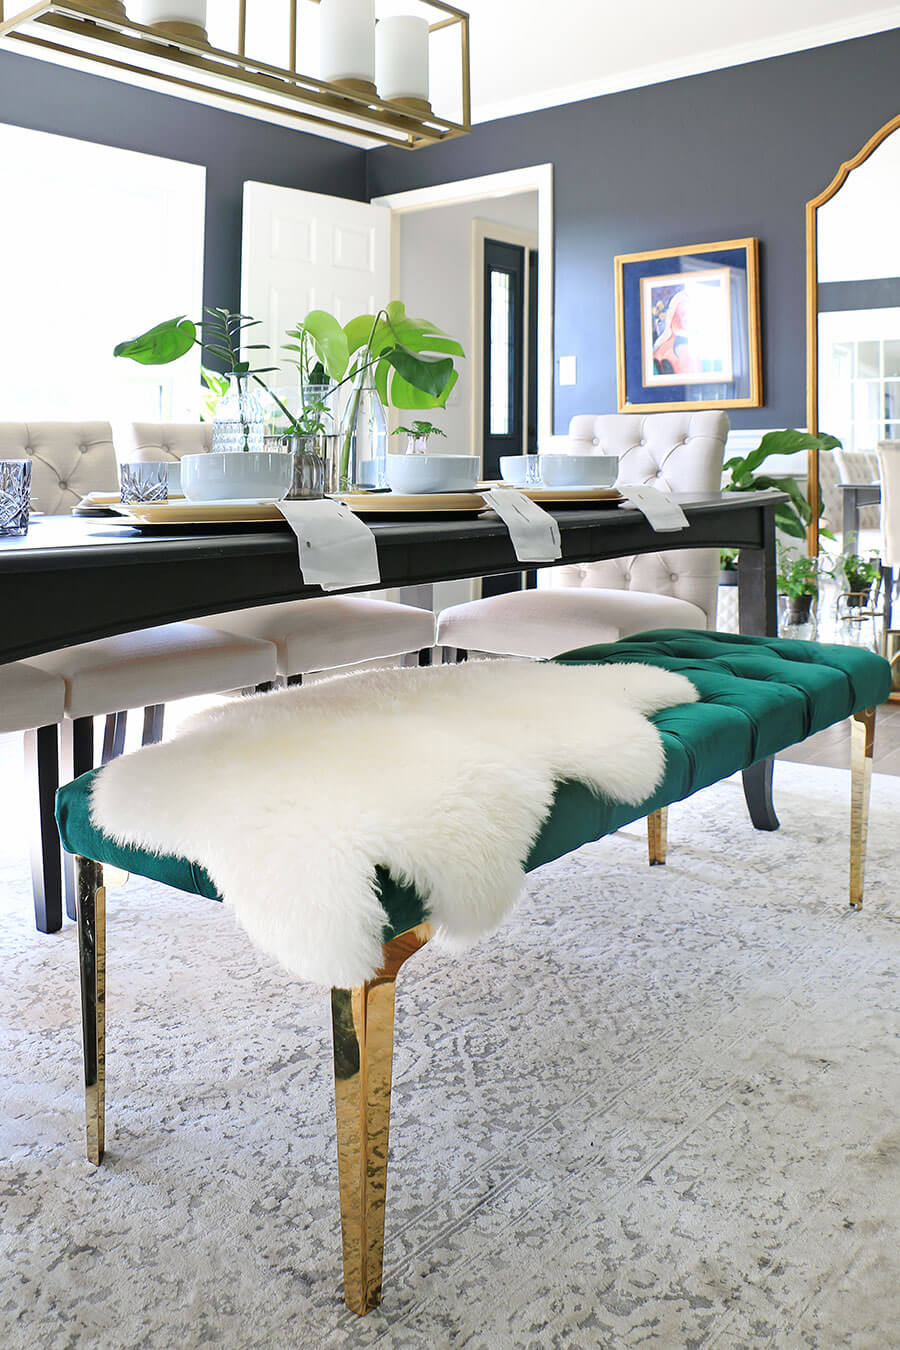 Fur-covered-bench-in-dining-room